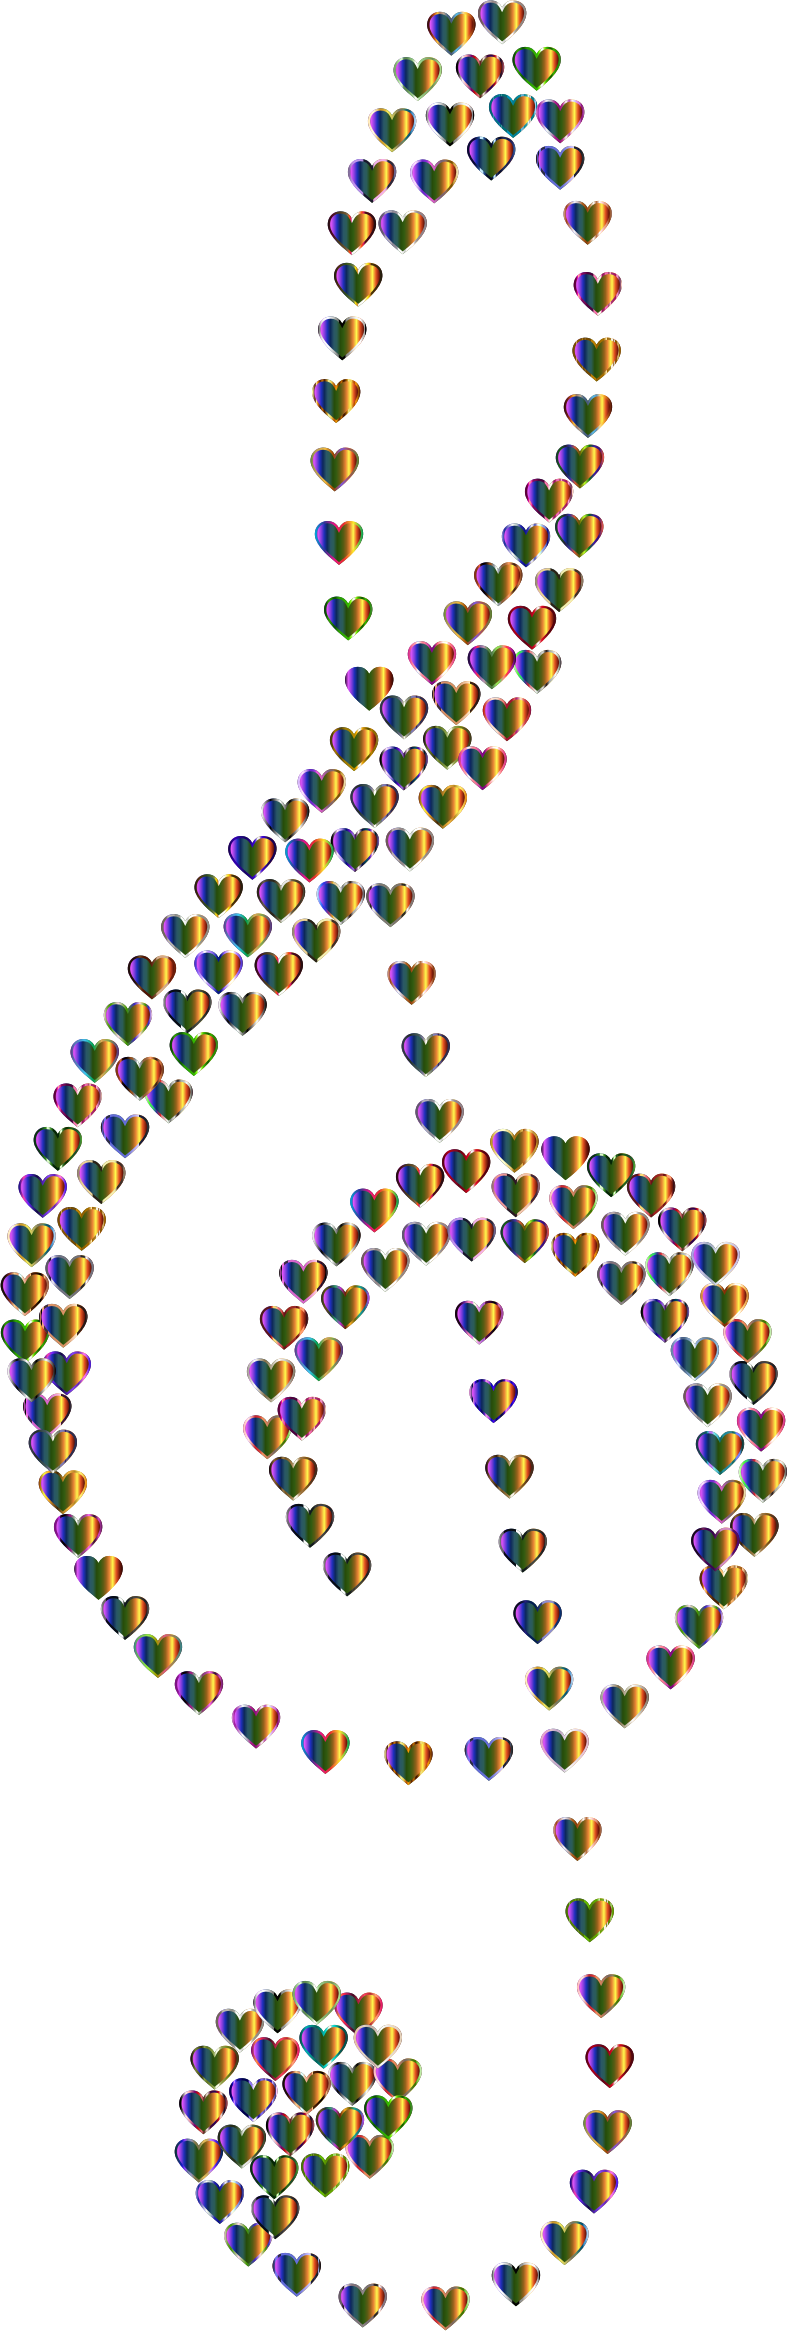 Prismatic Clef Hearts 7 No Background by GDJ